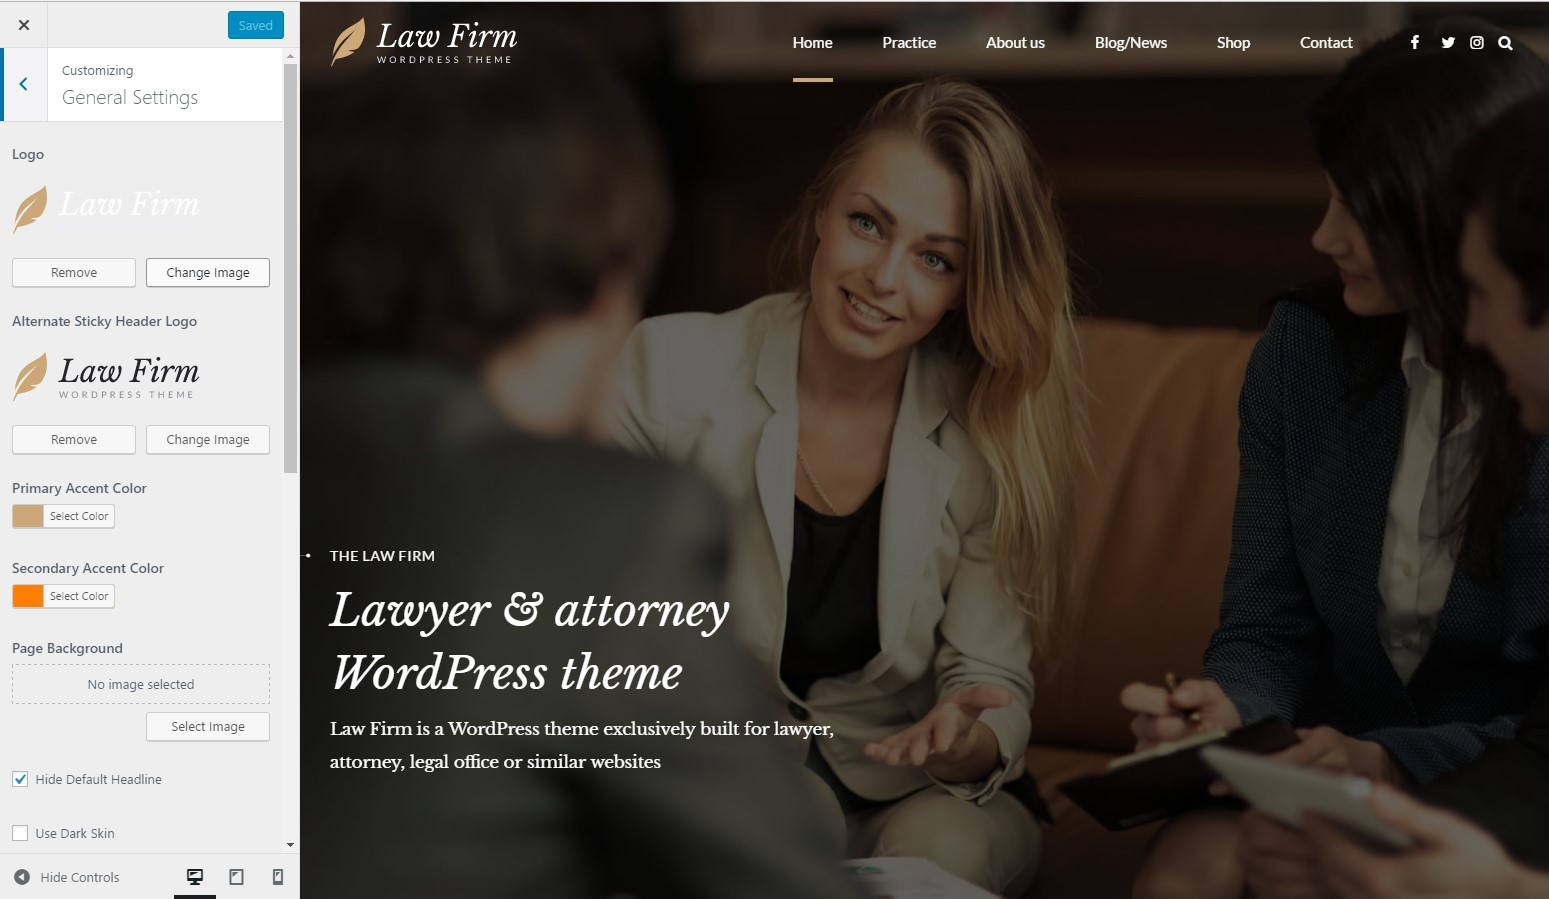 https://documentation.bold-themes.com/law-firm/wp-content/uploads/sites/15/2017/05/11-1.jpg